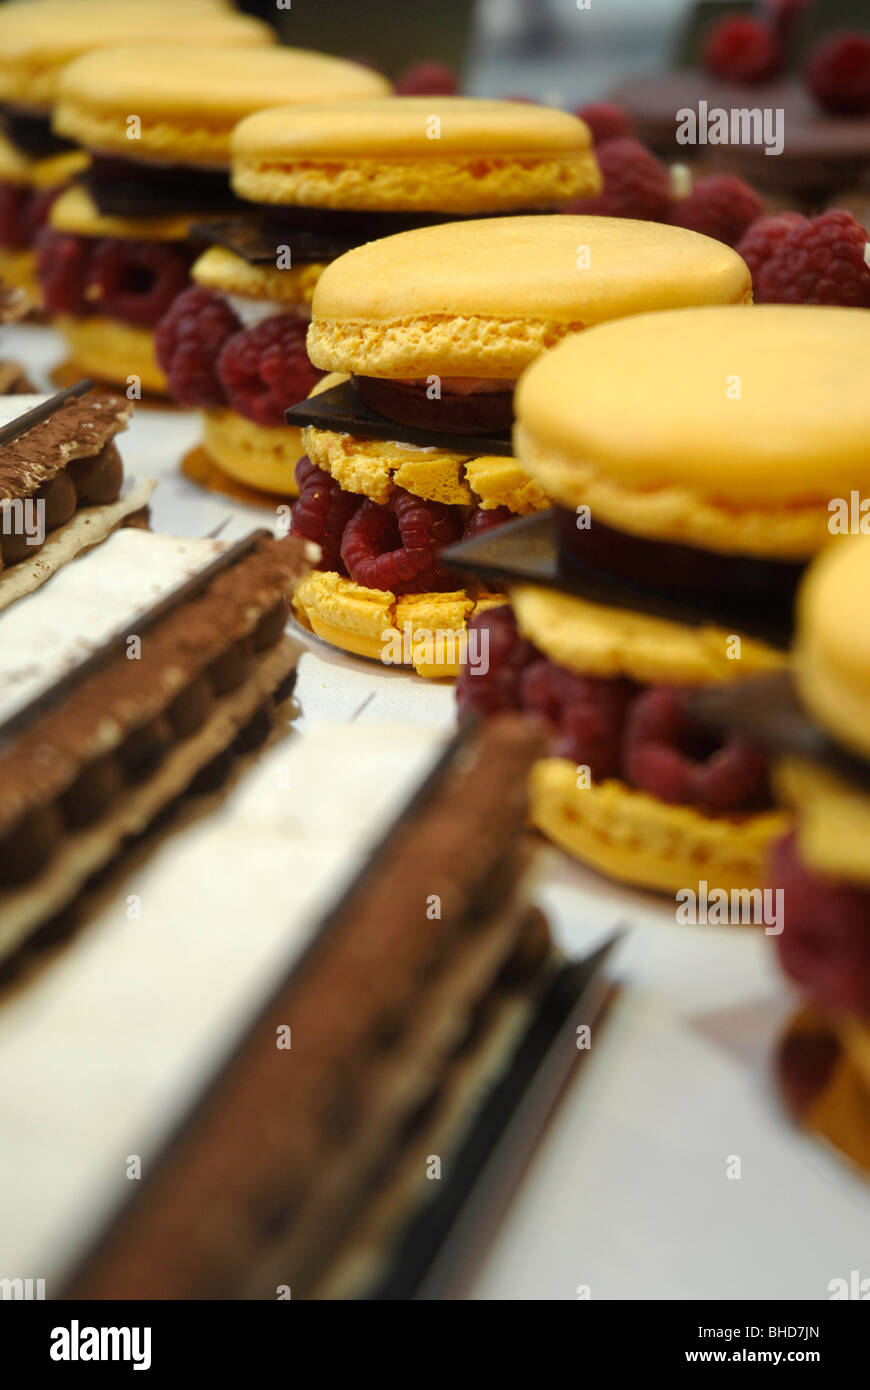 Sweet macaroons layered with fresh raspberries and thin wafer chocolate in shop window dispaly - Stock Image